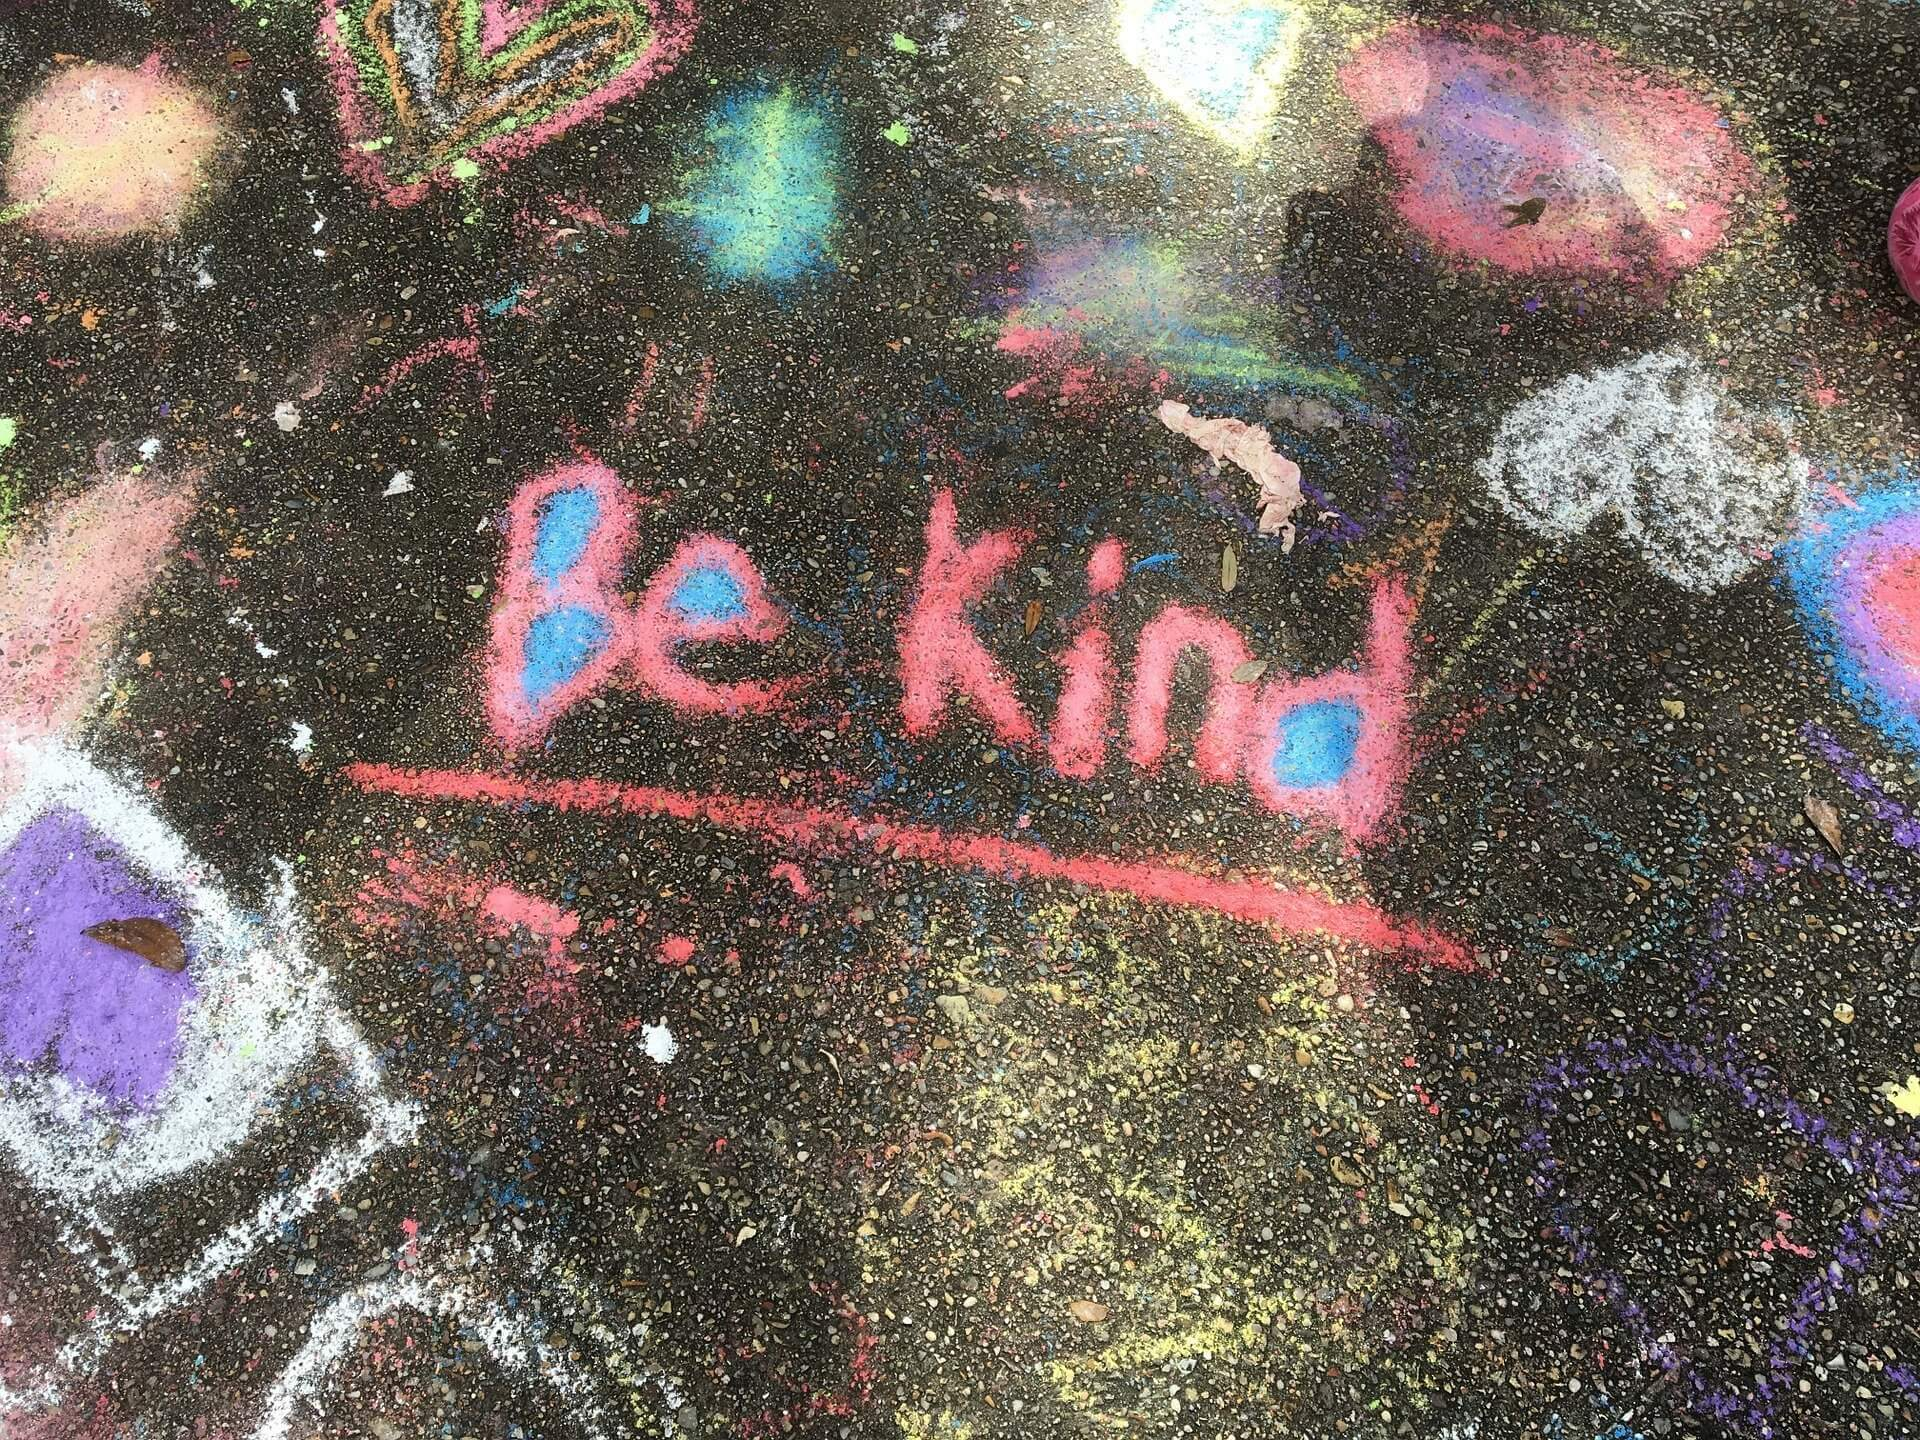 'Be kind' written in chalk on the ground - a good message from No Panic during Mental Health Awareness Week